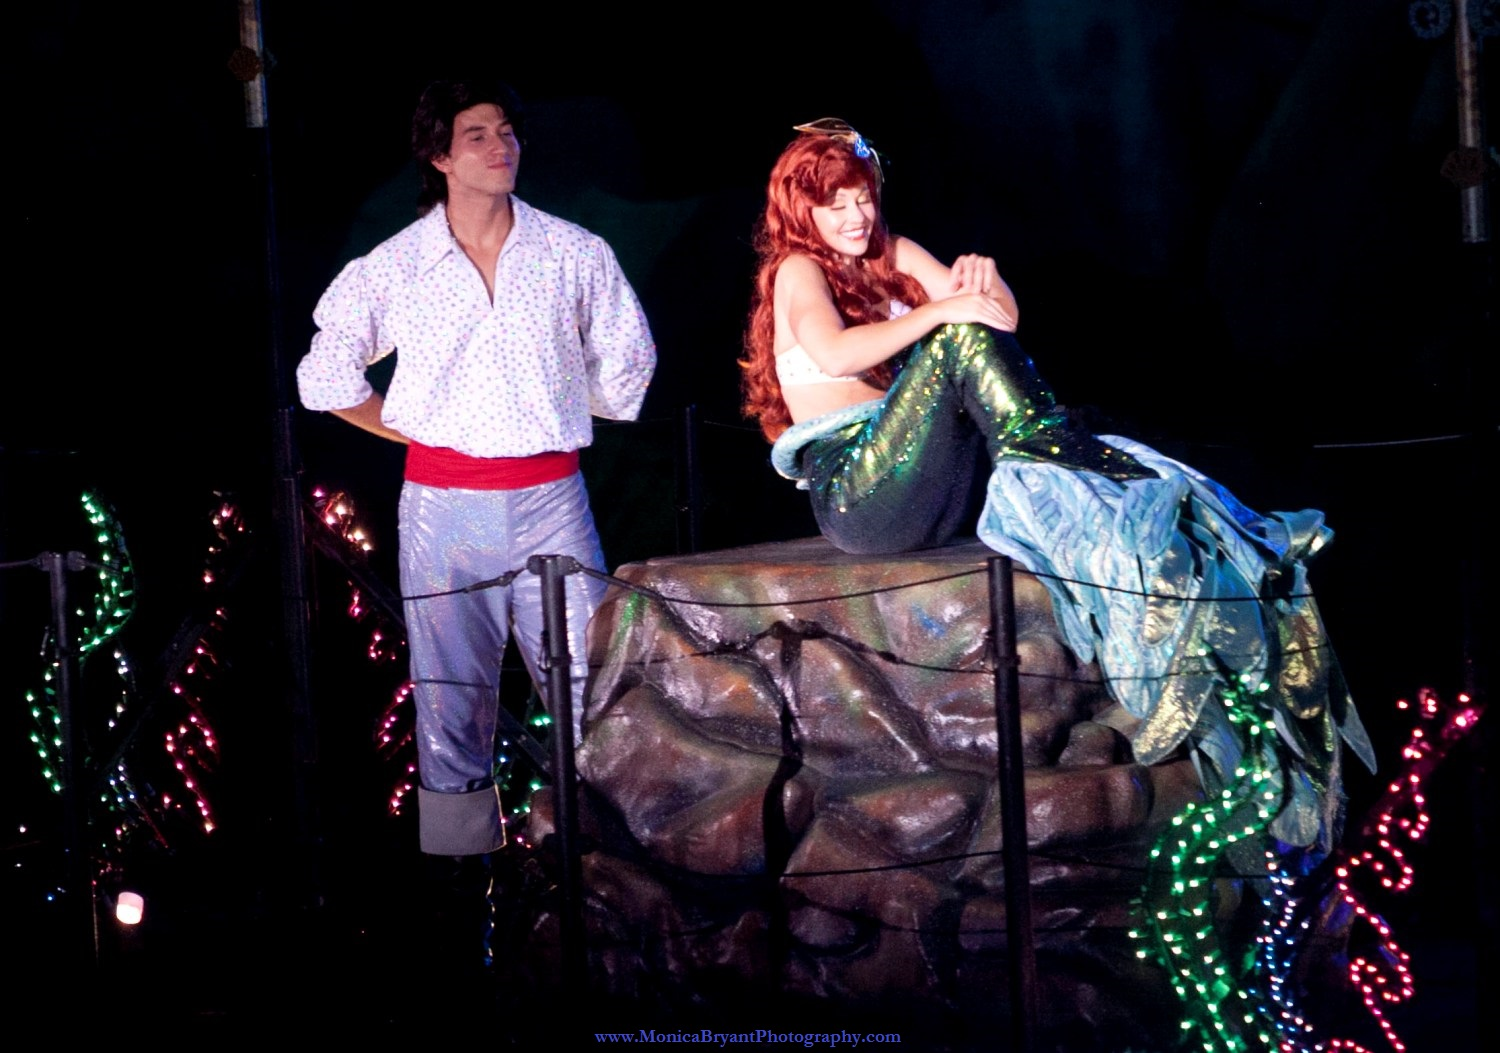 The Little Mermaid and Prince Eric in Fantasmic! at Disney's Hollywood Studios